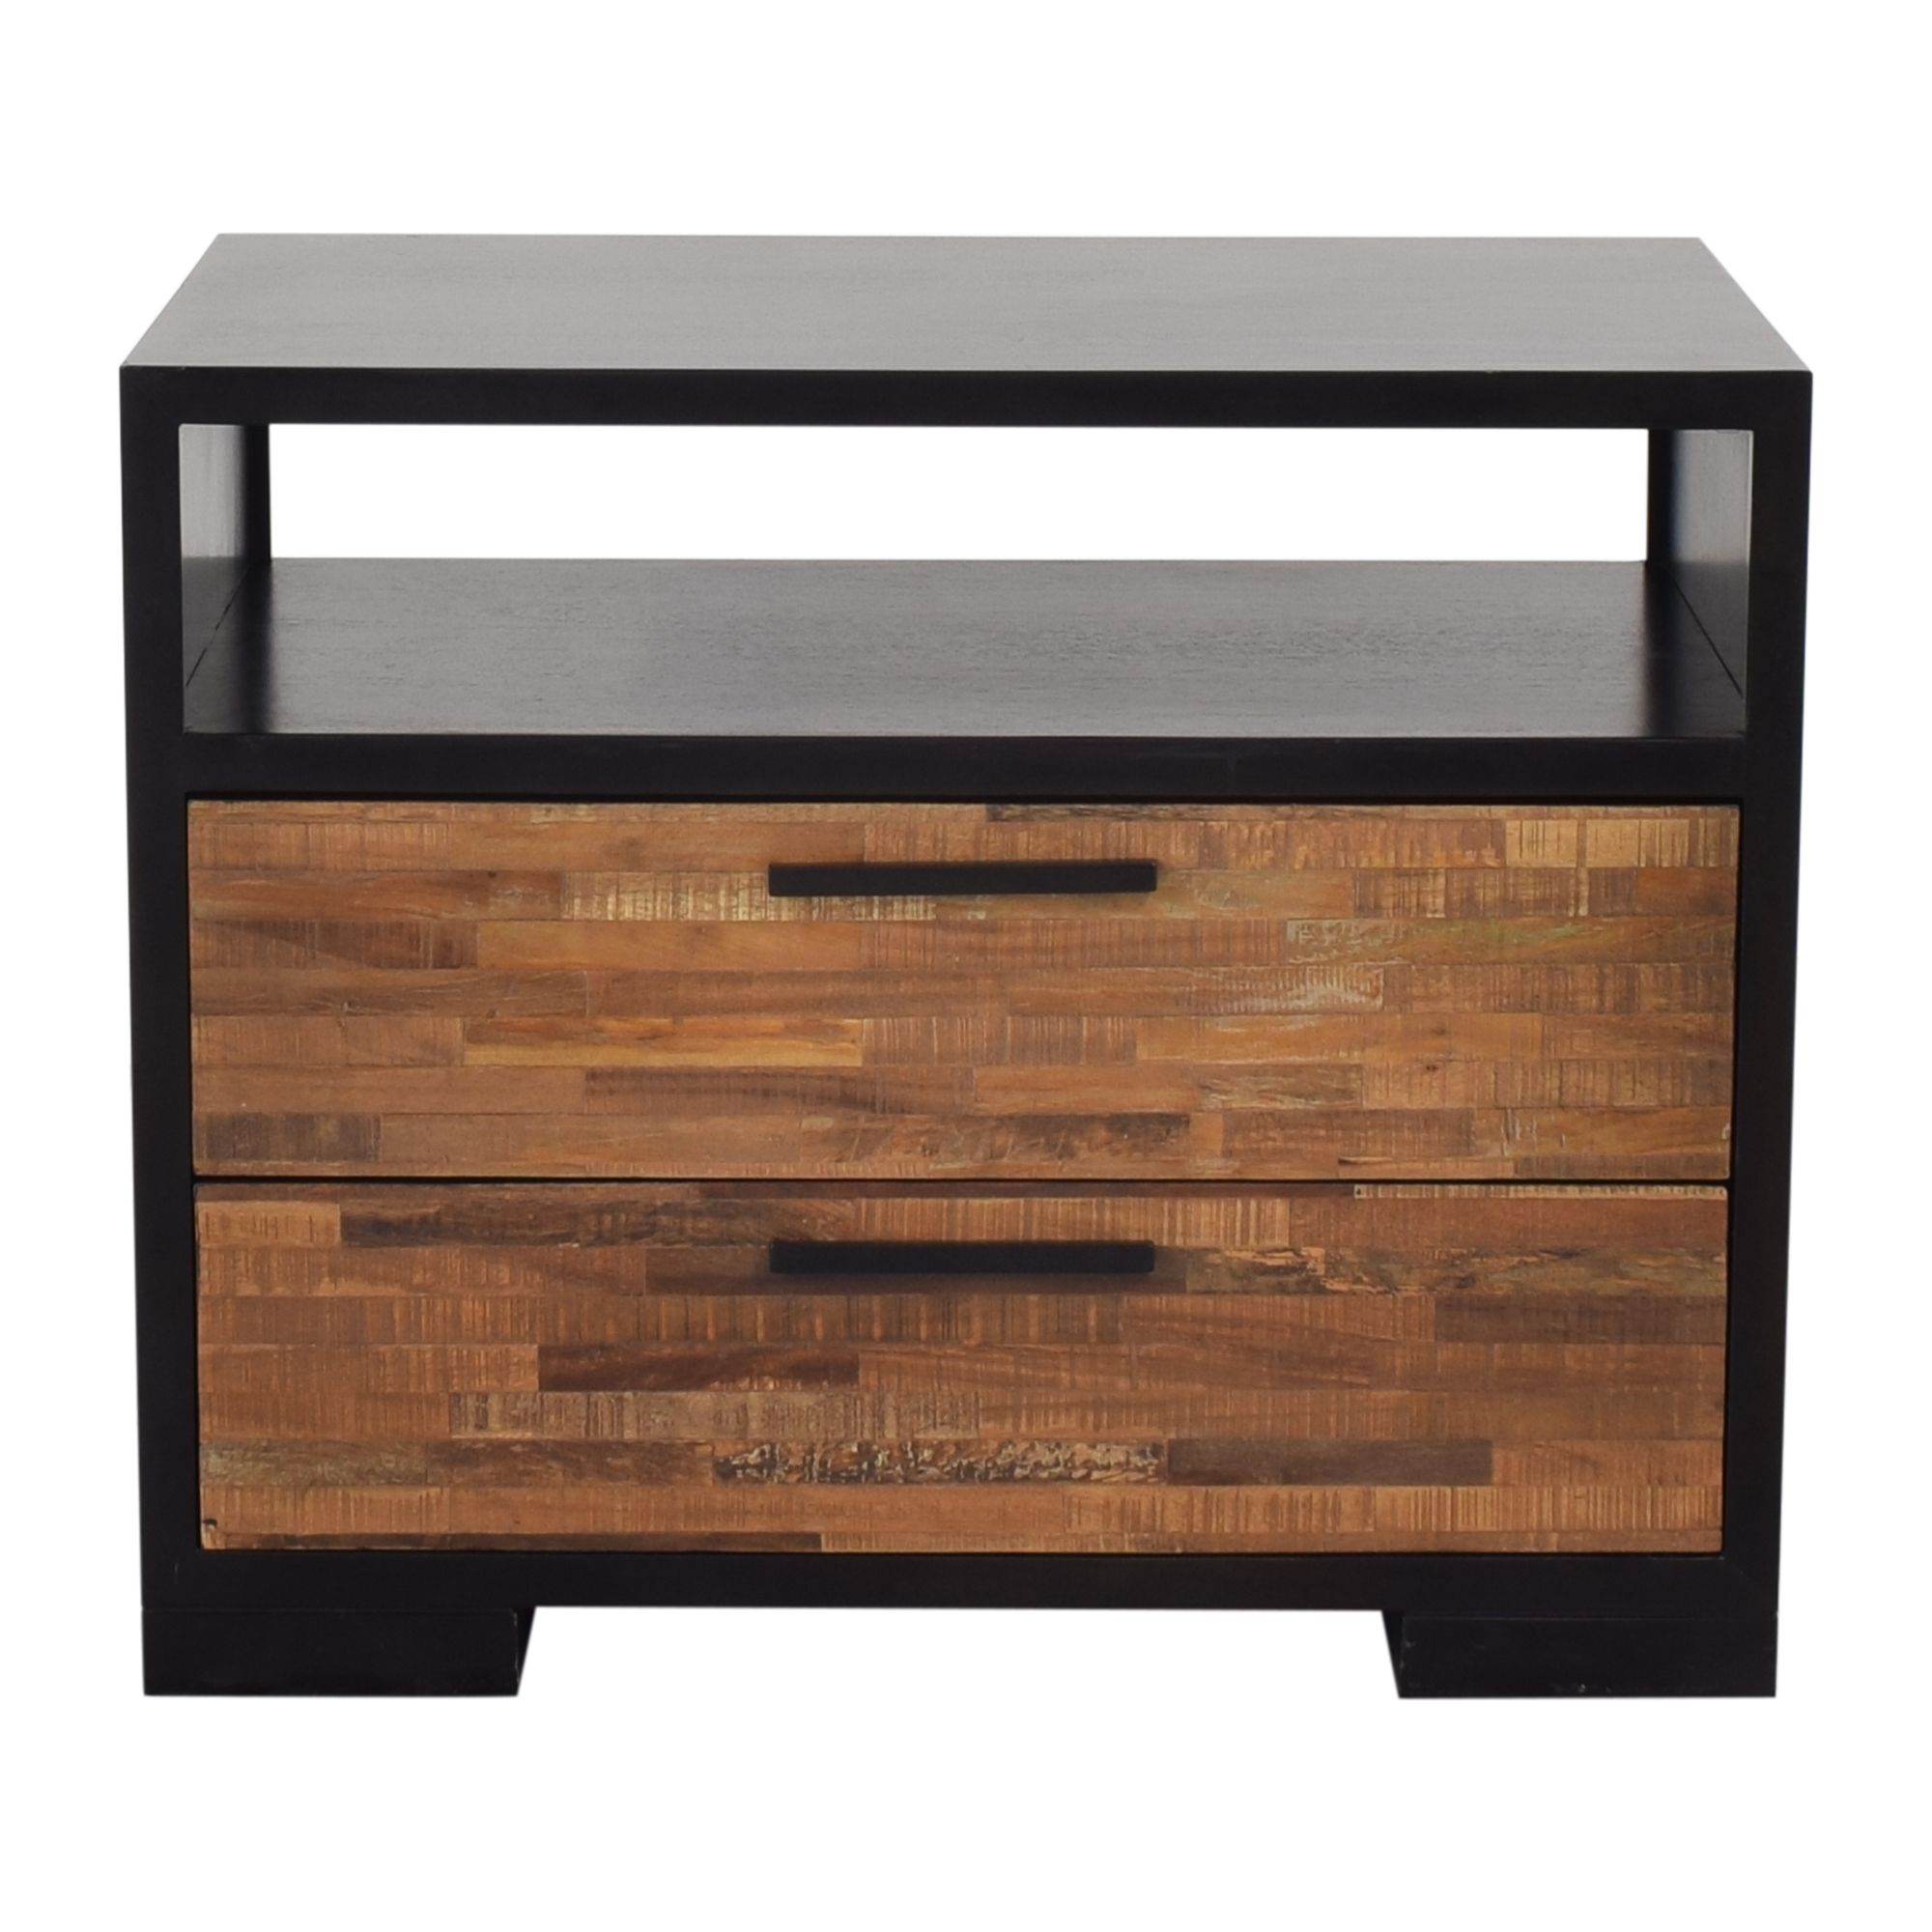 shop Crate & Barrel Media Console Crate & Barrel